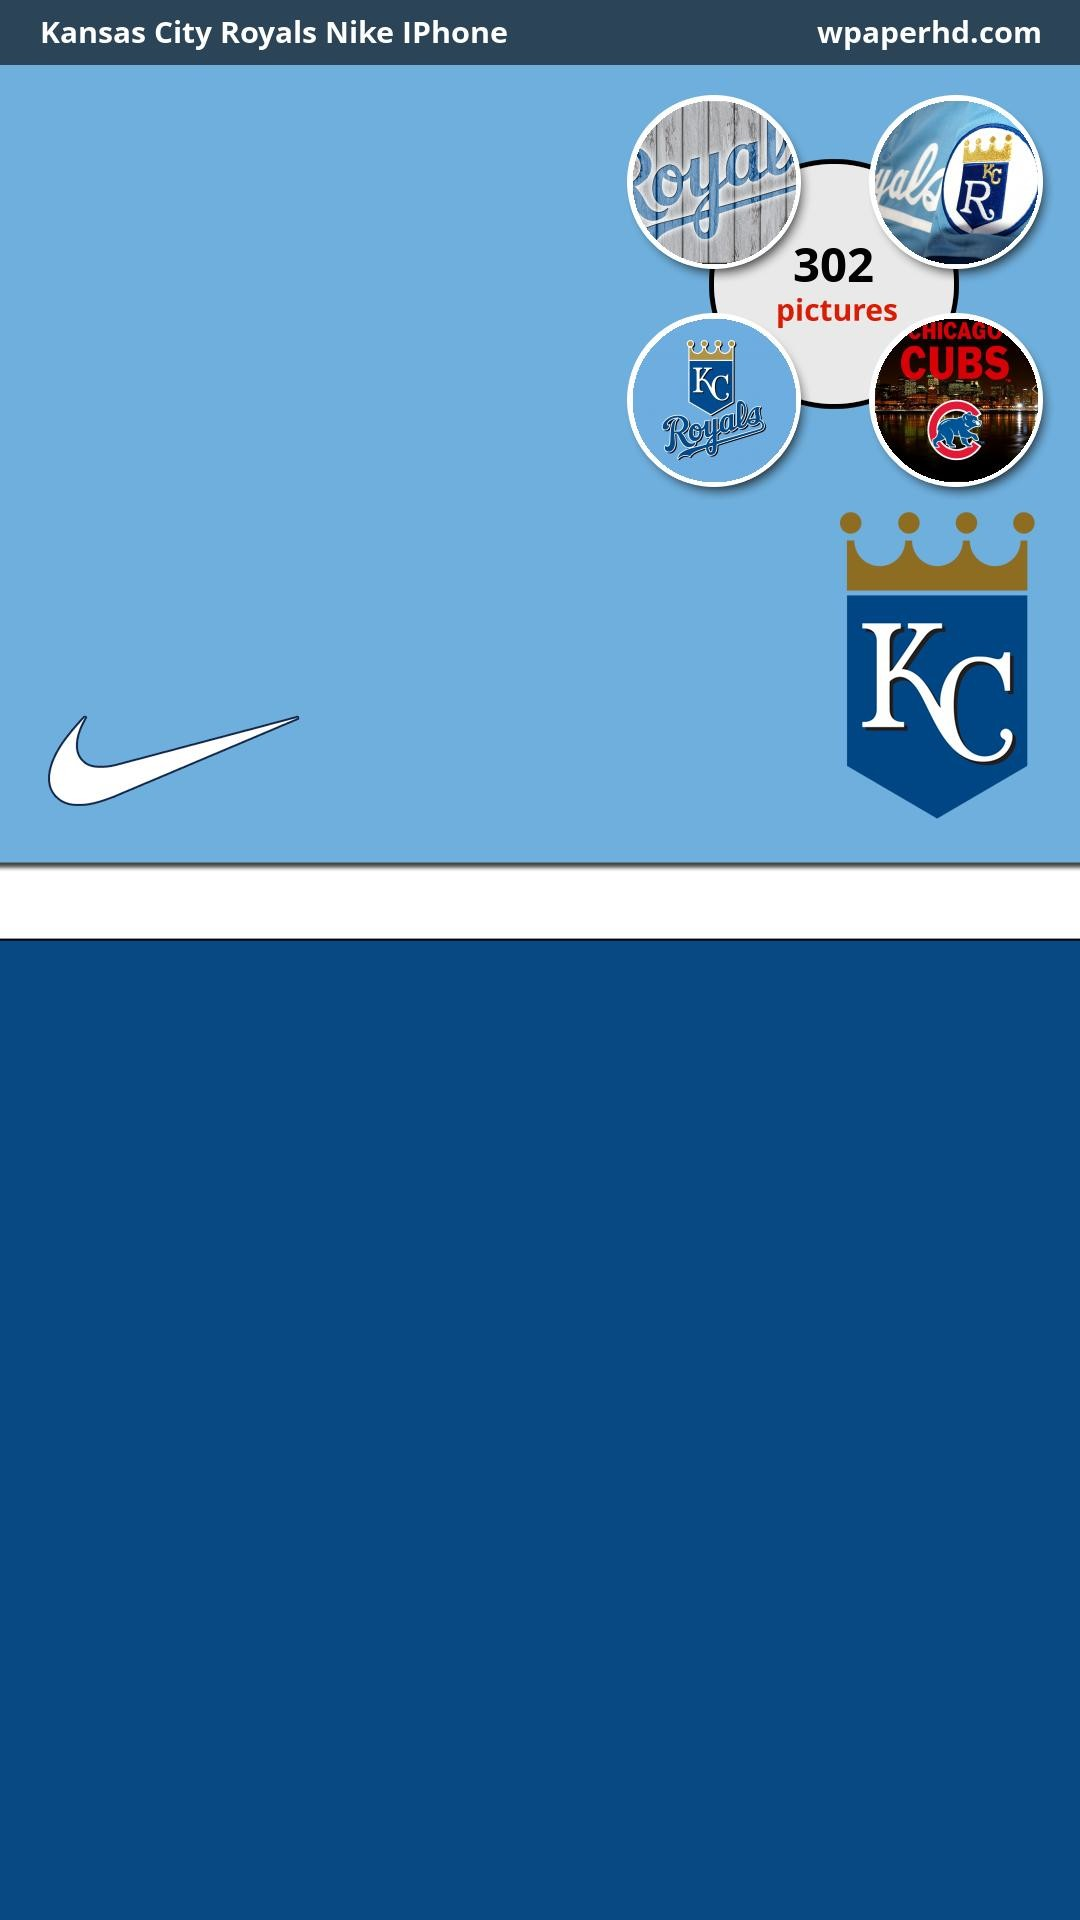 Can I get the KC Royals and KU Jayhawks like the wallpaper below. Thanks in advance